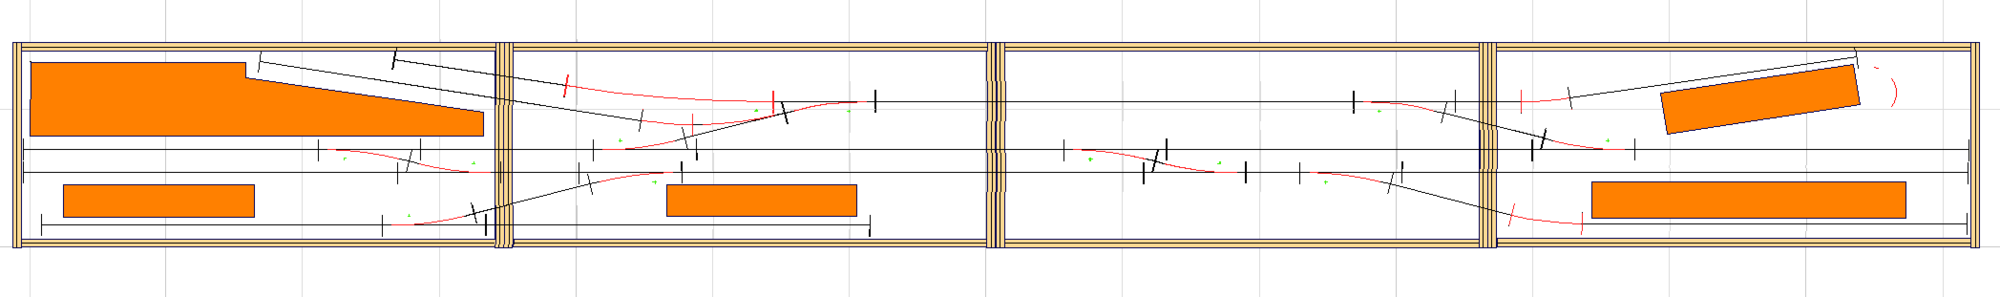 layout_01.png